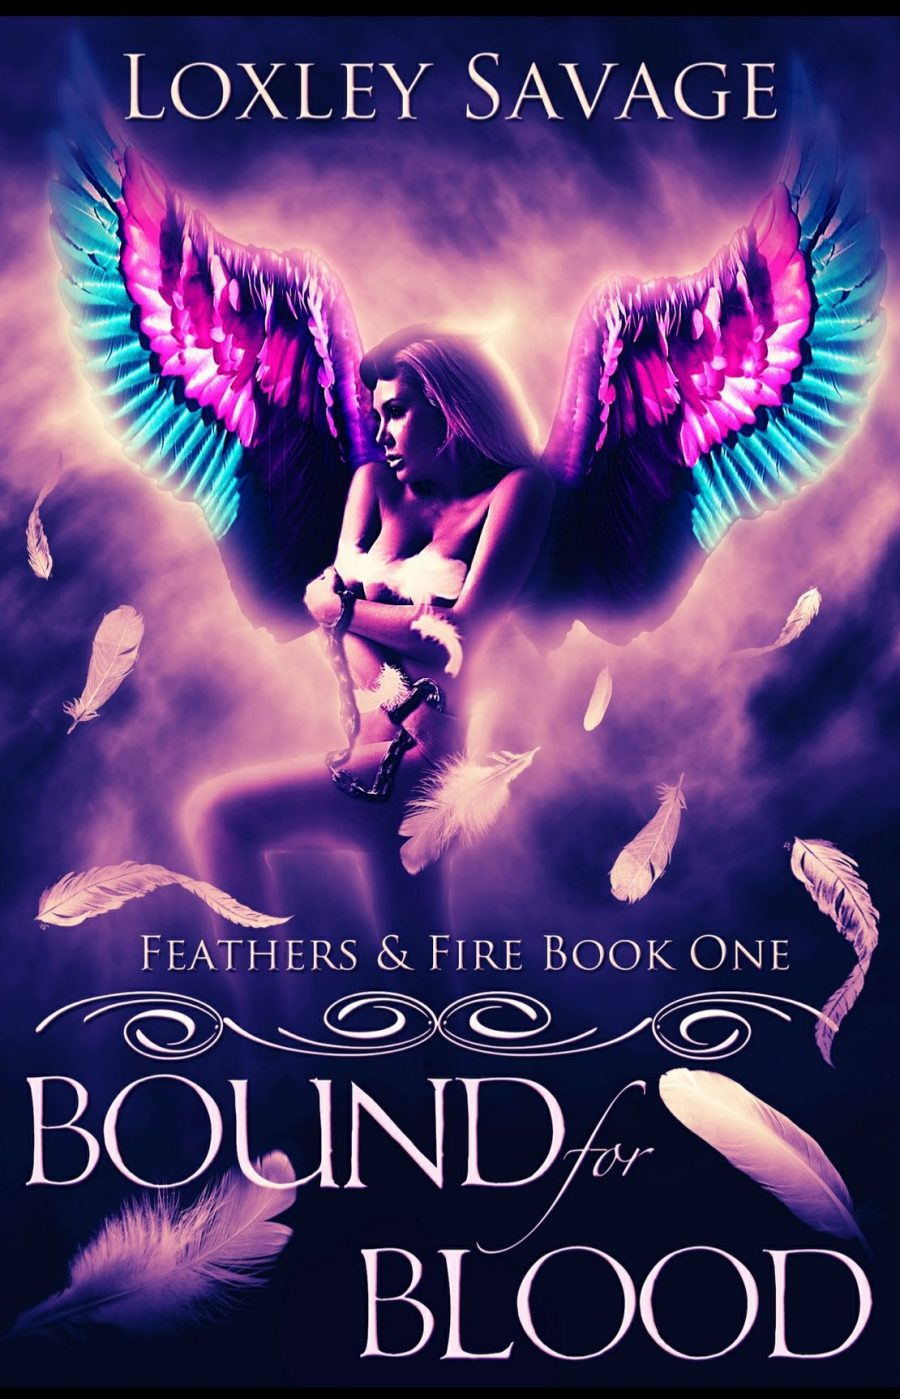 Bound for Blood by Loxley Savage - A Book Review #BookReview #Dark #WhyChoose #FastBurn #RH #Paranormal #PNR #Amazing #MustRead #BooksAndBlurbs